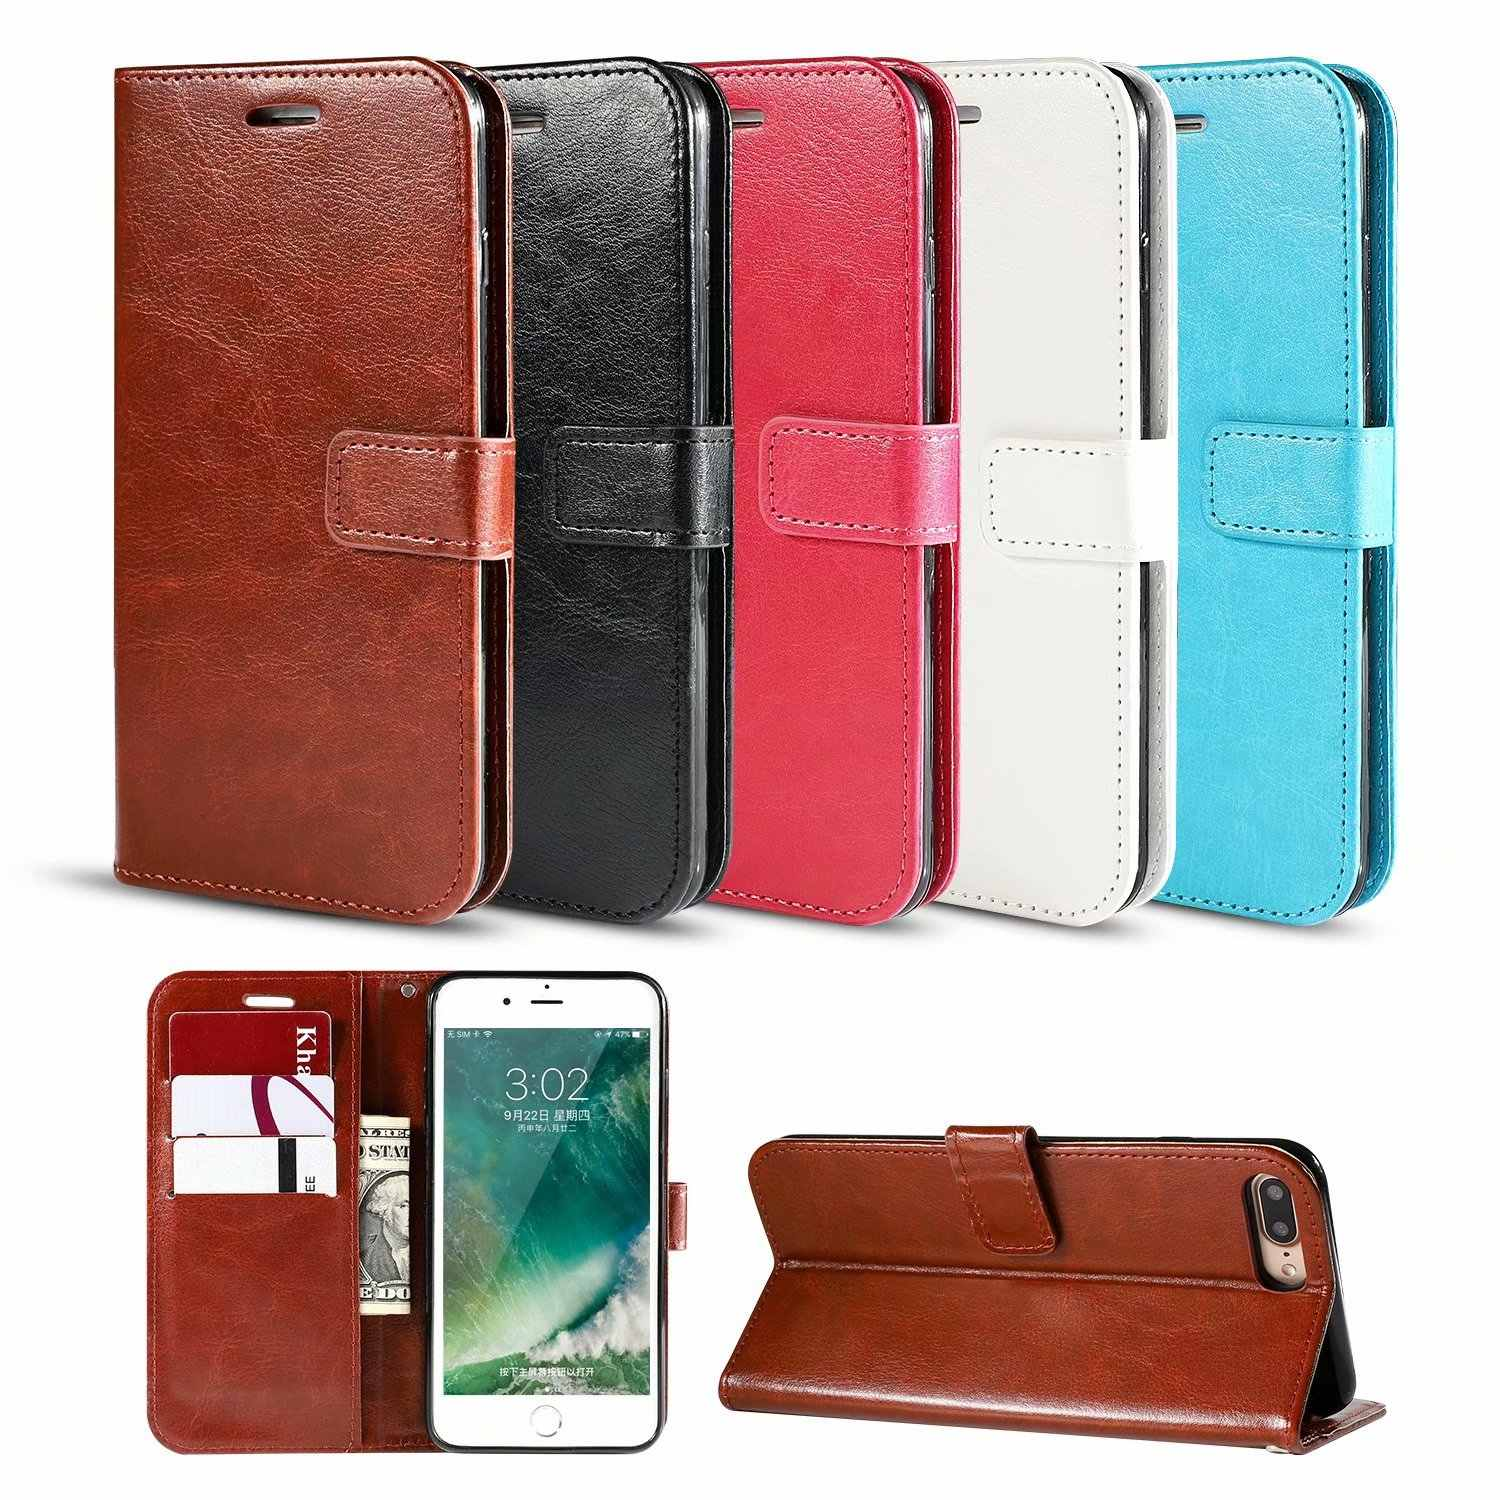 Anti-Klop Fashion Leather Flip Wallet Case Telefoon Cover Voor Iphone X Xs Max Xr 11 Pro 7 8 6 6S Plus 5S Se 2020 Beschermende Tassen